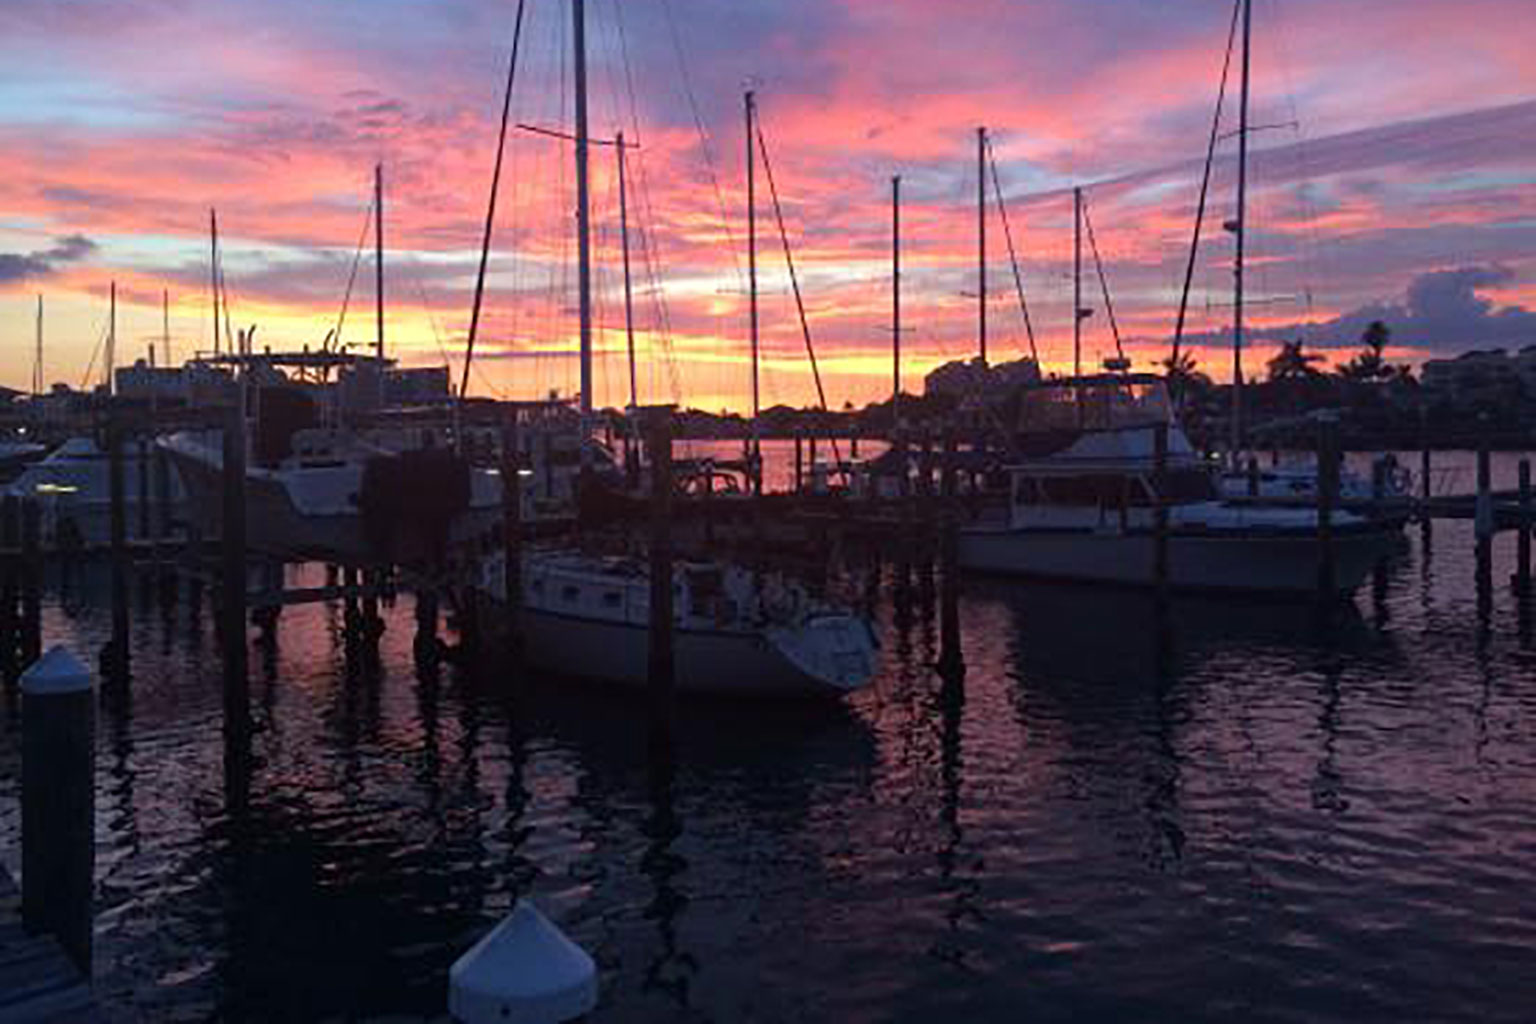 Charthouse Marina Sunset